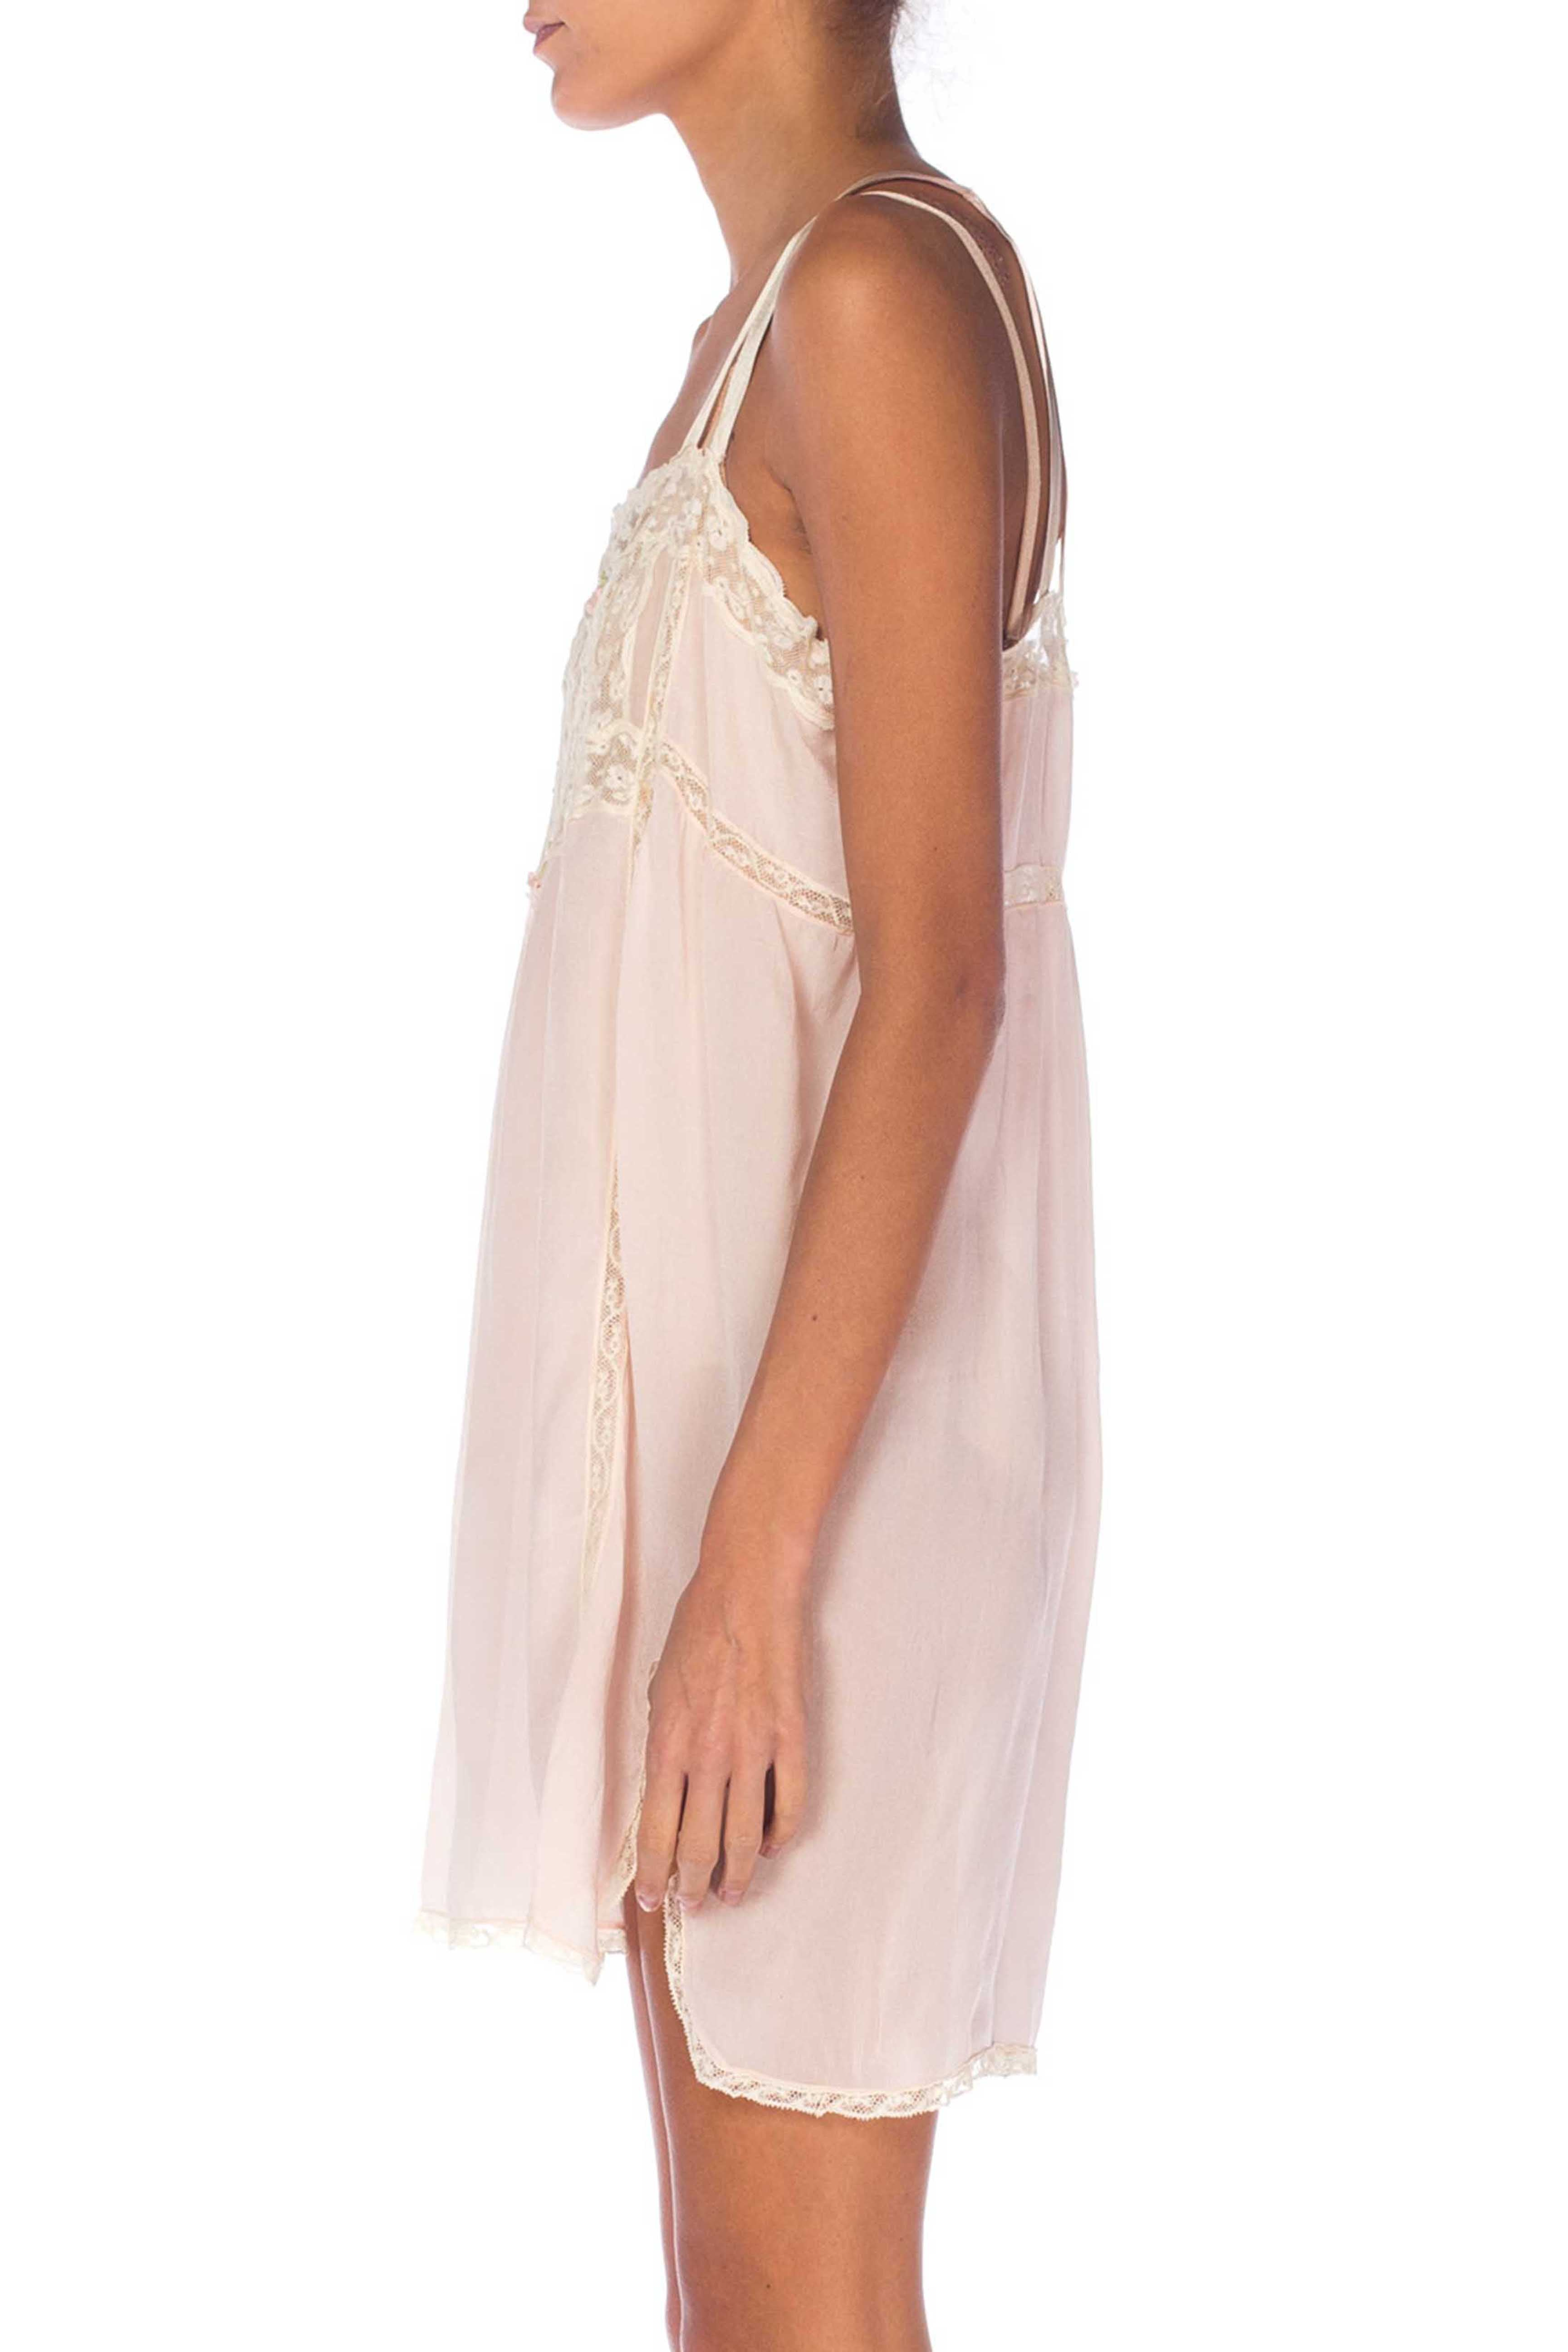 1920S Blush Pink Silk & Lace Negligee Slip Dress With Ribbon Roses